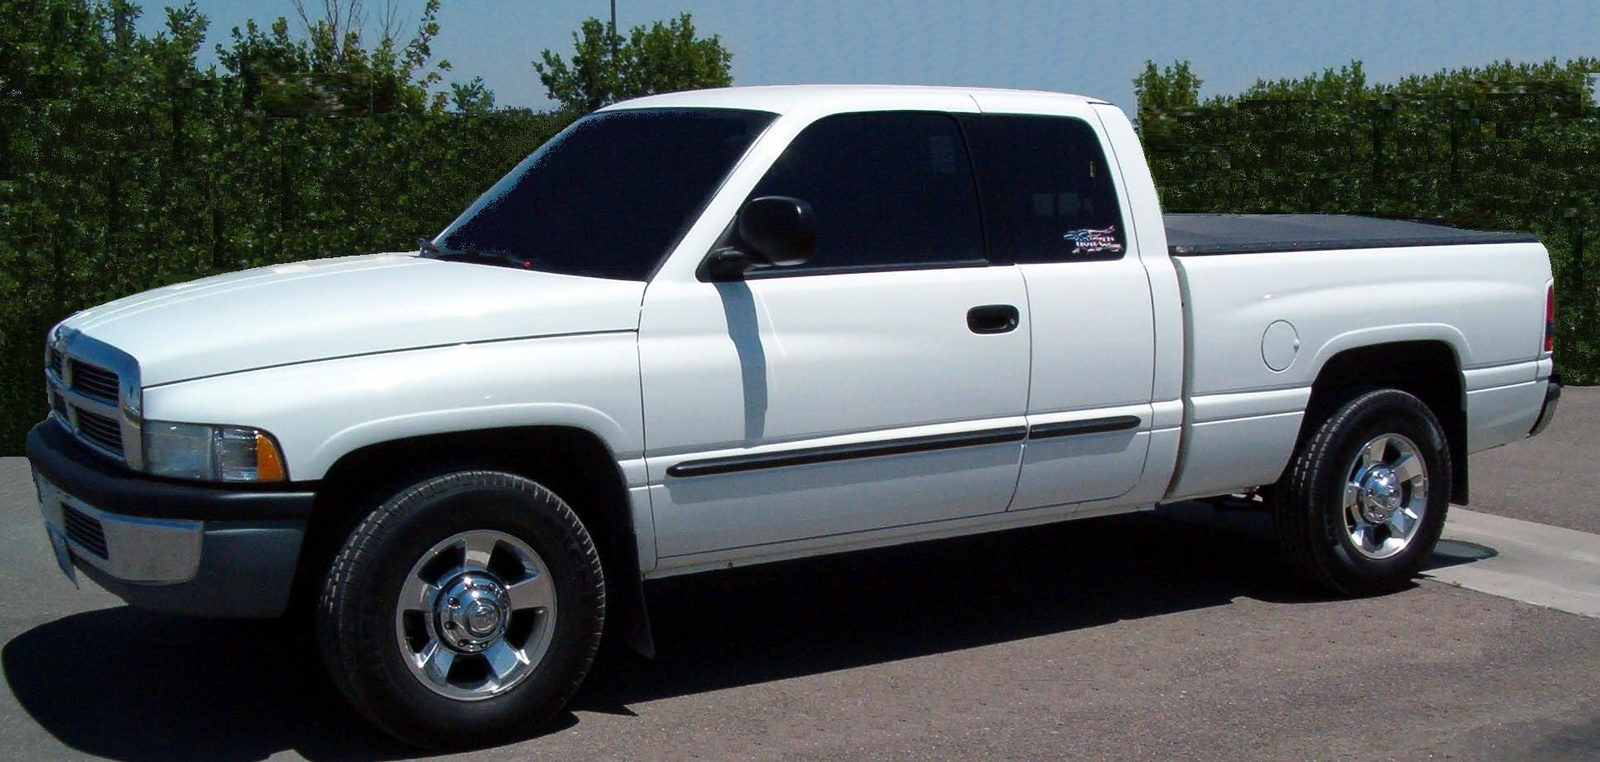 2002 dodge ram 2500 specifications new cars used cars car html autos weblog. Black Bedroom Furniture Sets. Home Design Ideas